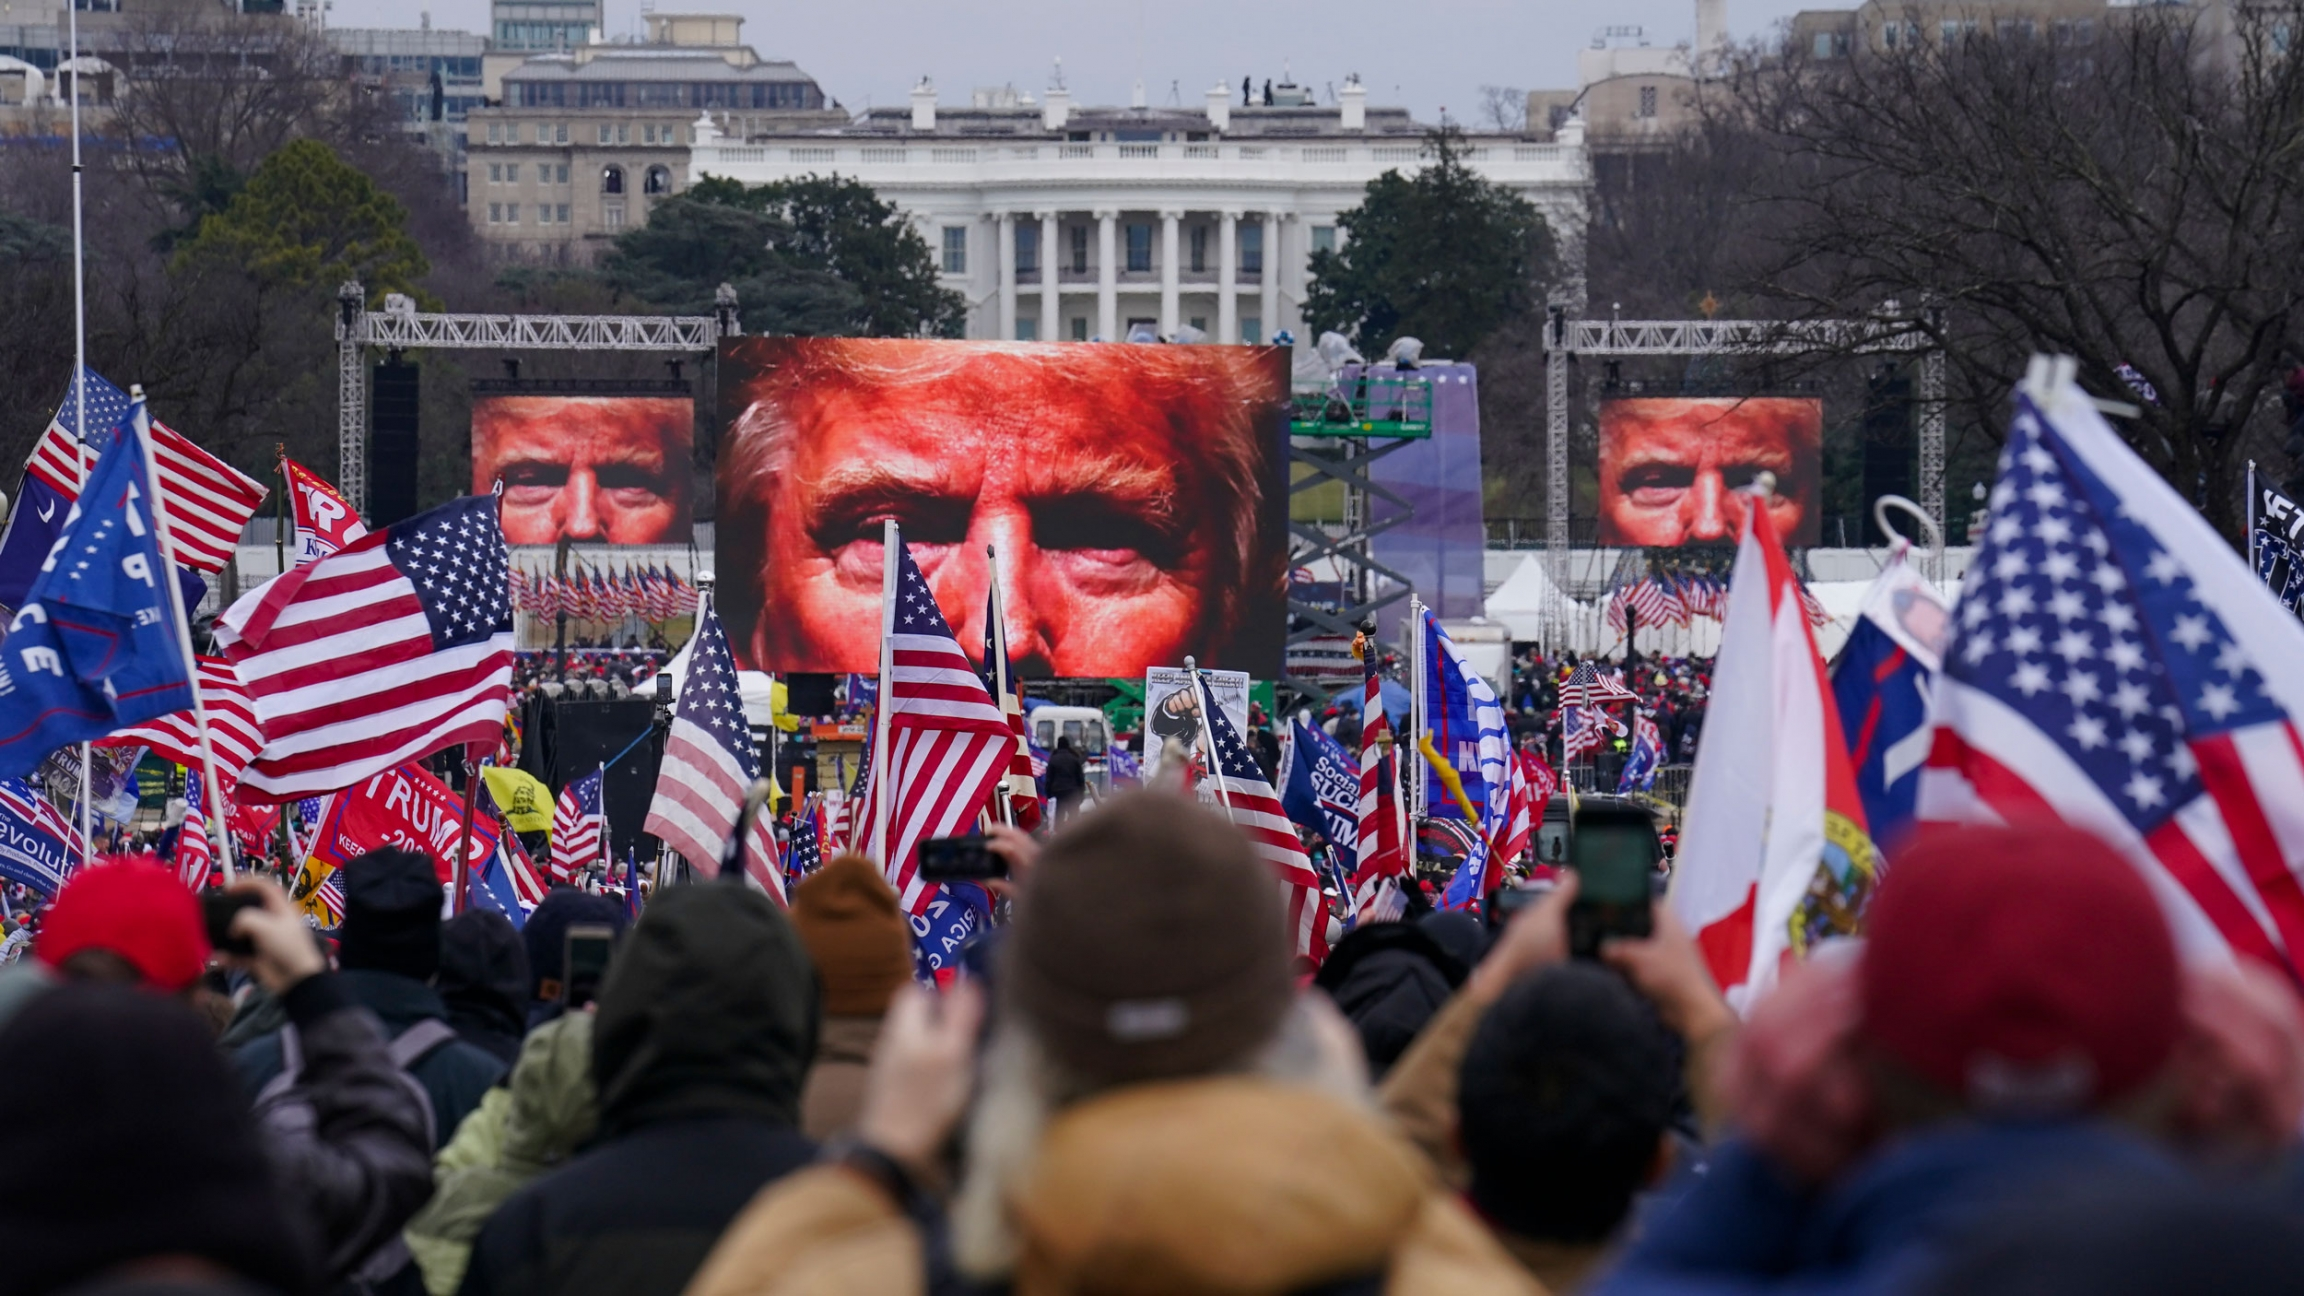 A large crowd of people are shown holding small US flags with screens showing Donald Trump's eyes in the distance.